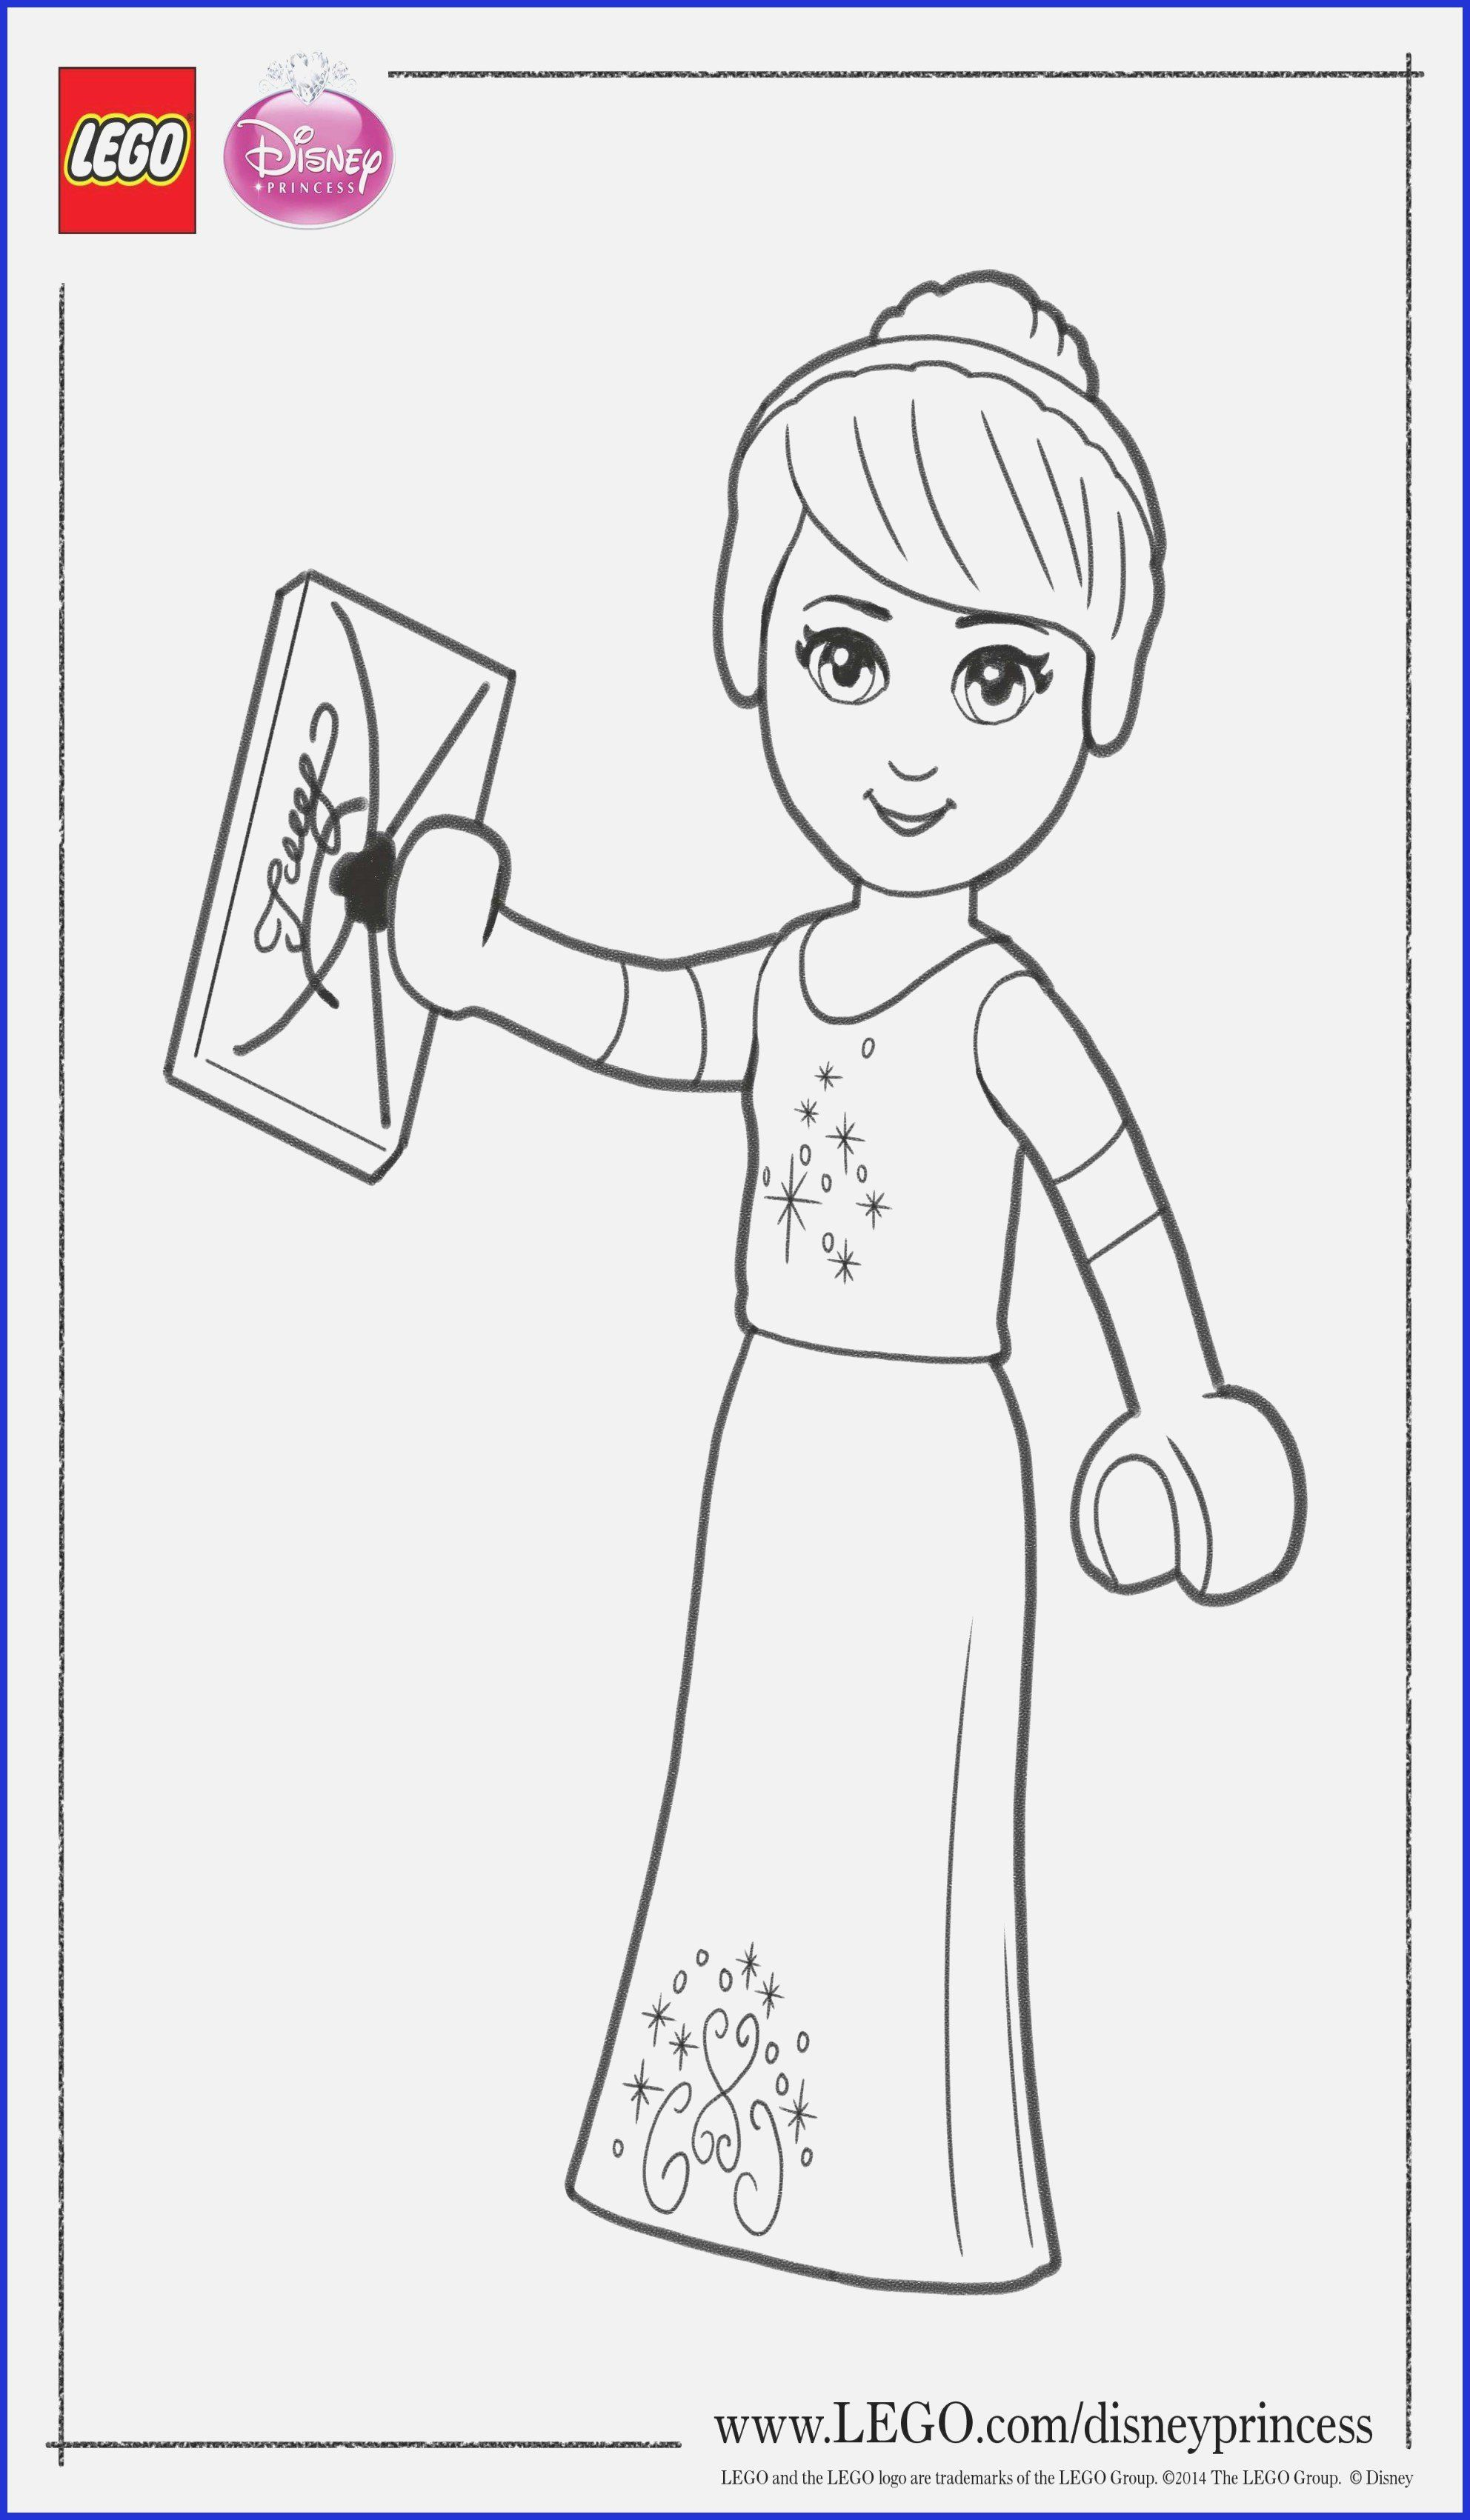 Disney Princess Coloring Book Beautiful Disney Princess Coloring Pages Free To P Disney Princess Colors Disney Princess Coloring Pages Toy Story Coloring Pages